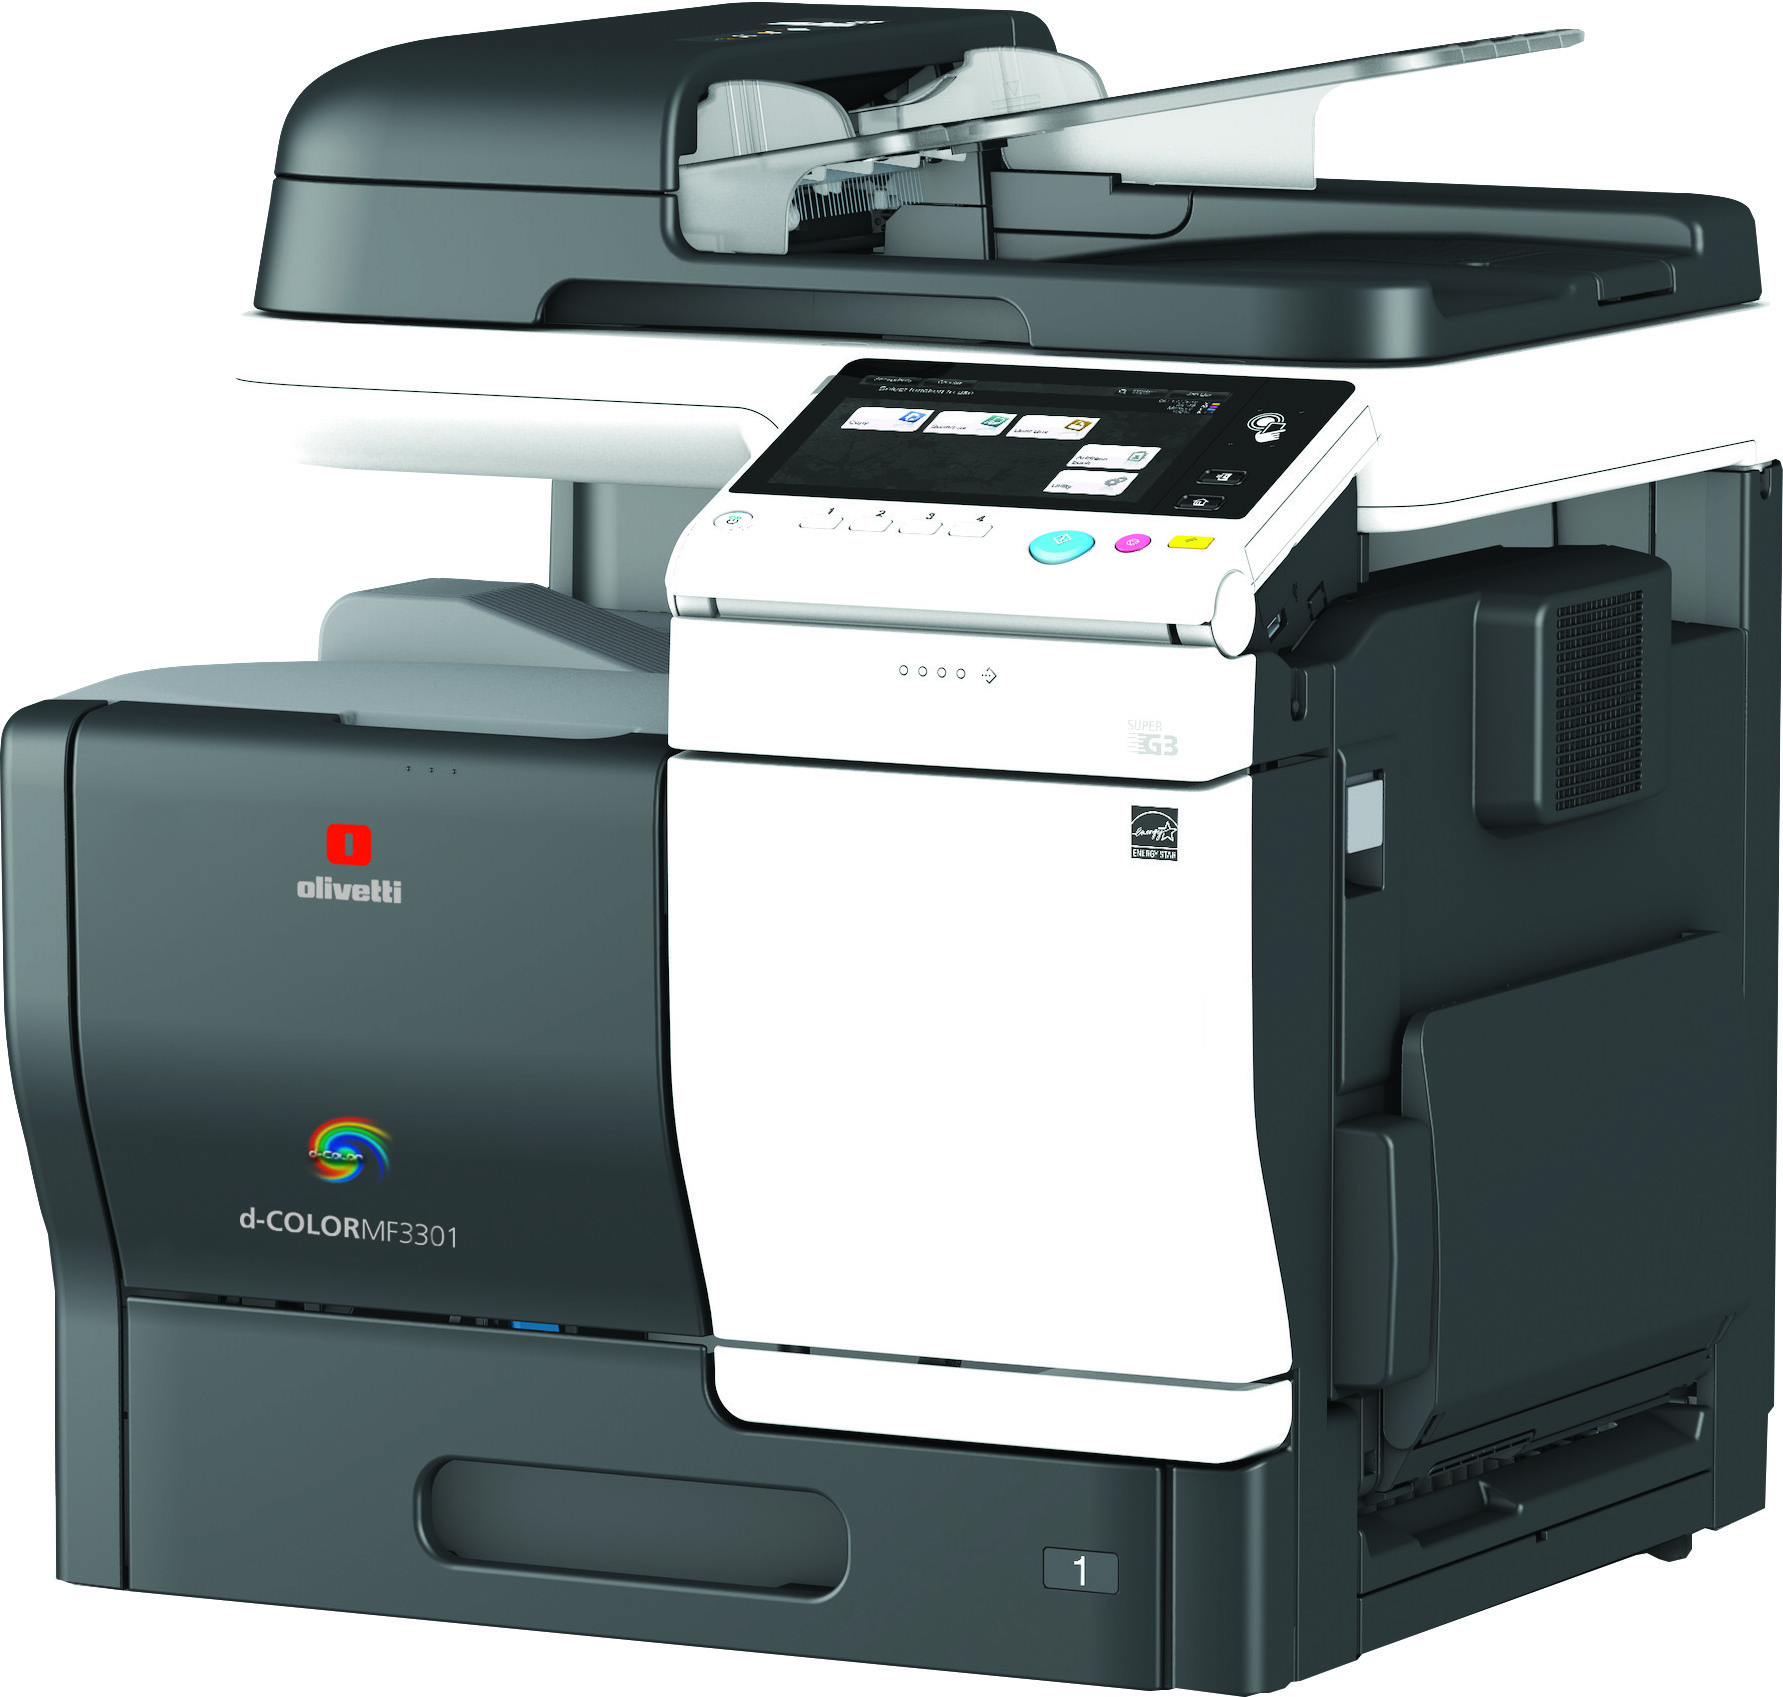 Olivetti – d-Color MF3301 / d-Color MF3801